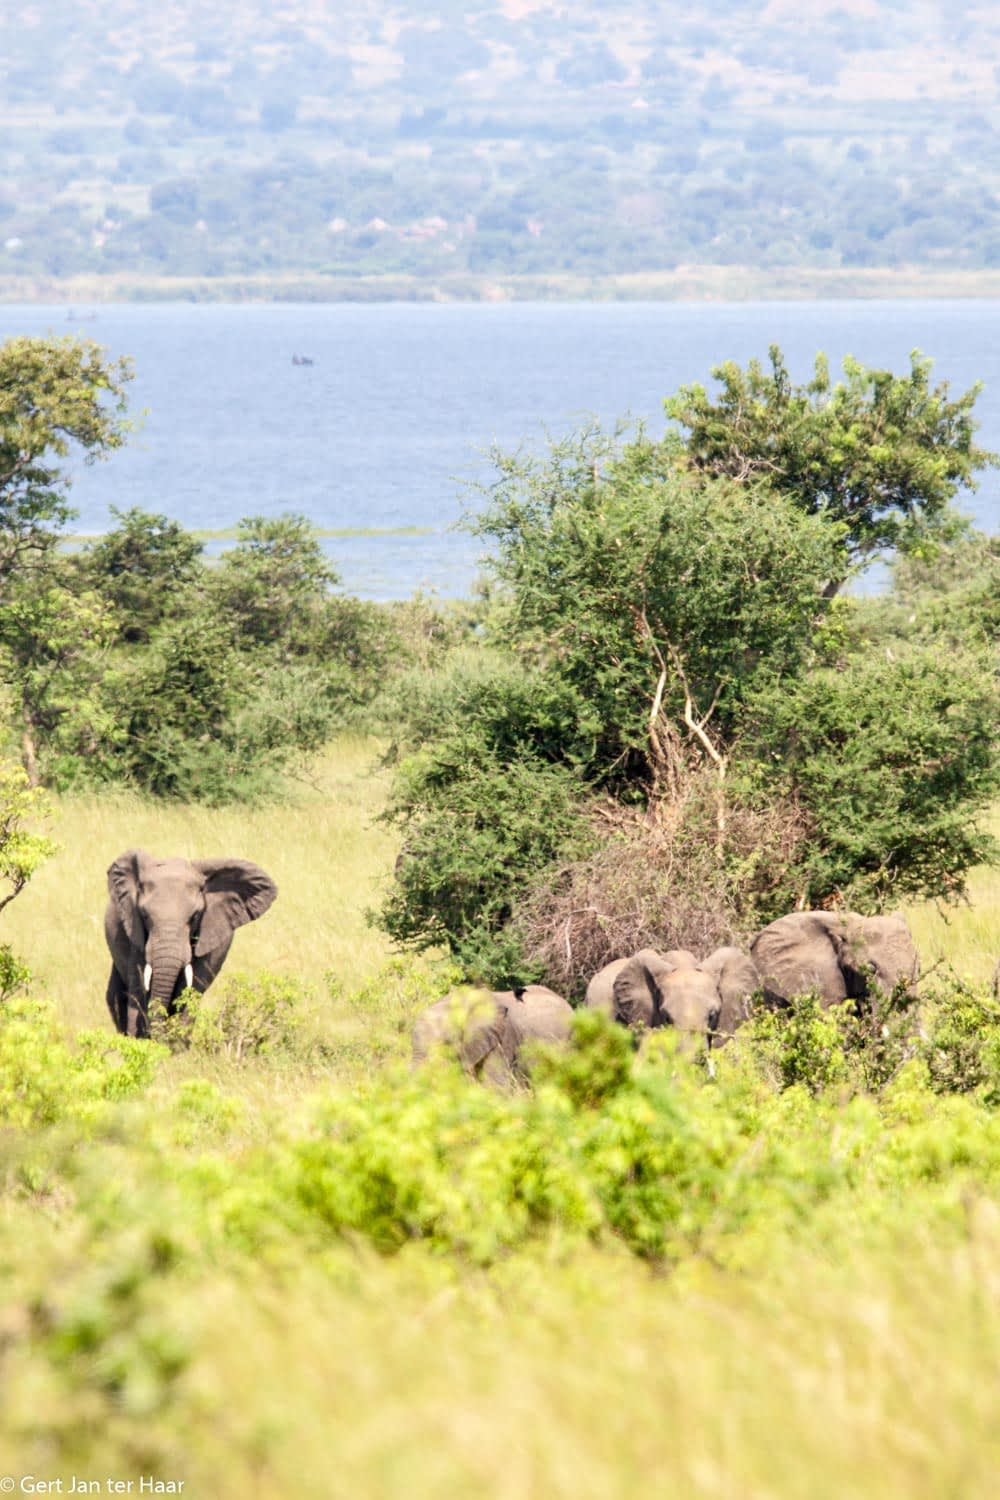 elephants, Murchison Falls National Park, Uganda